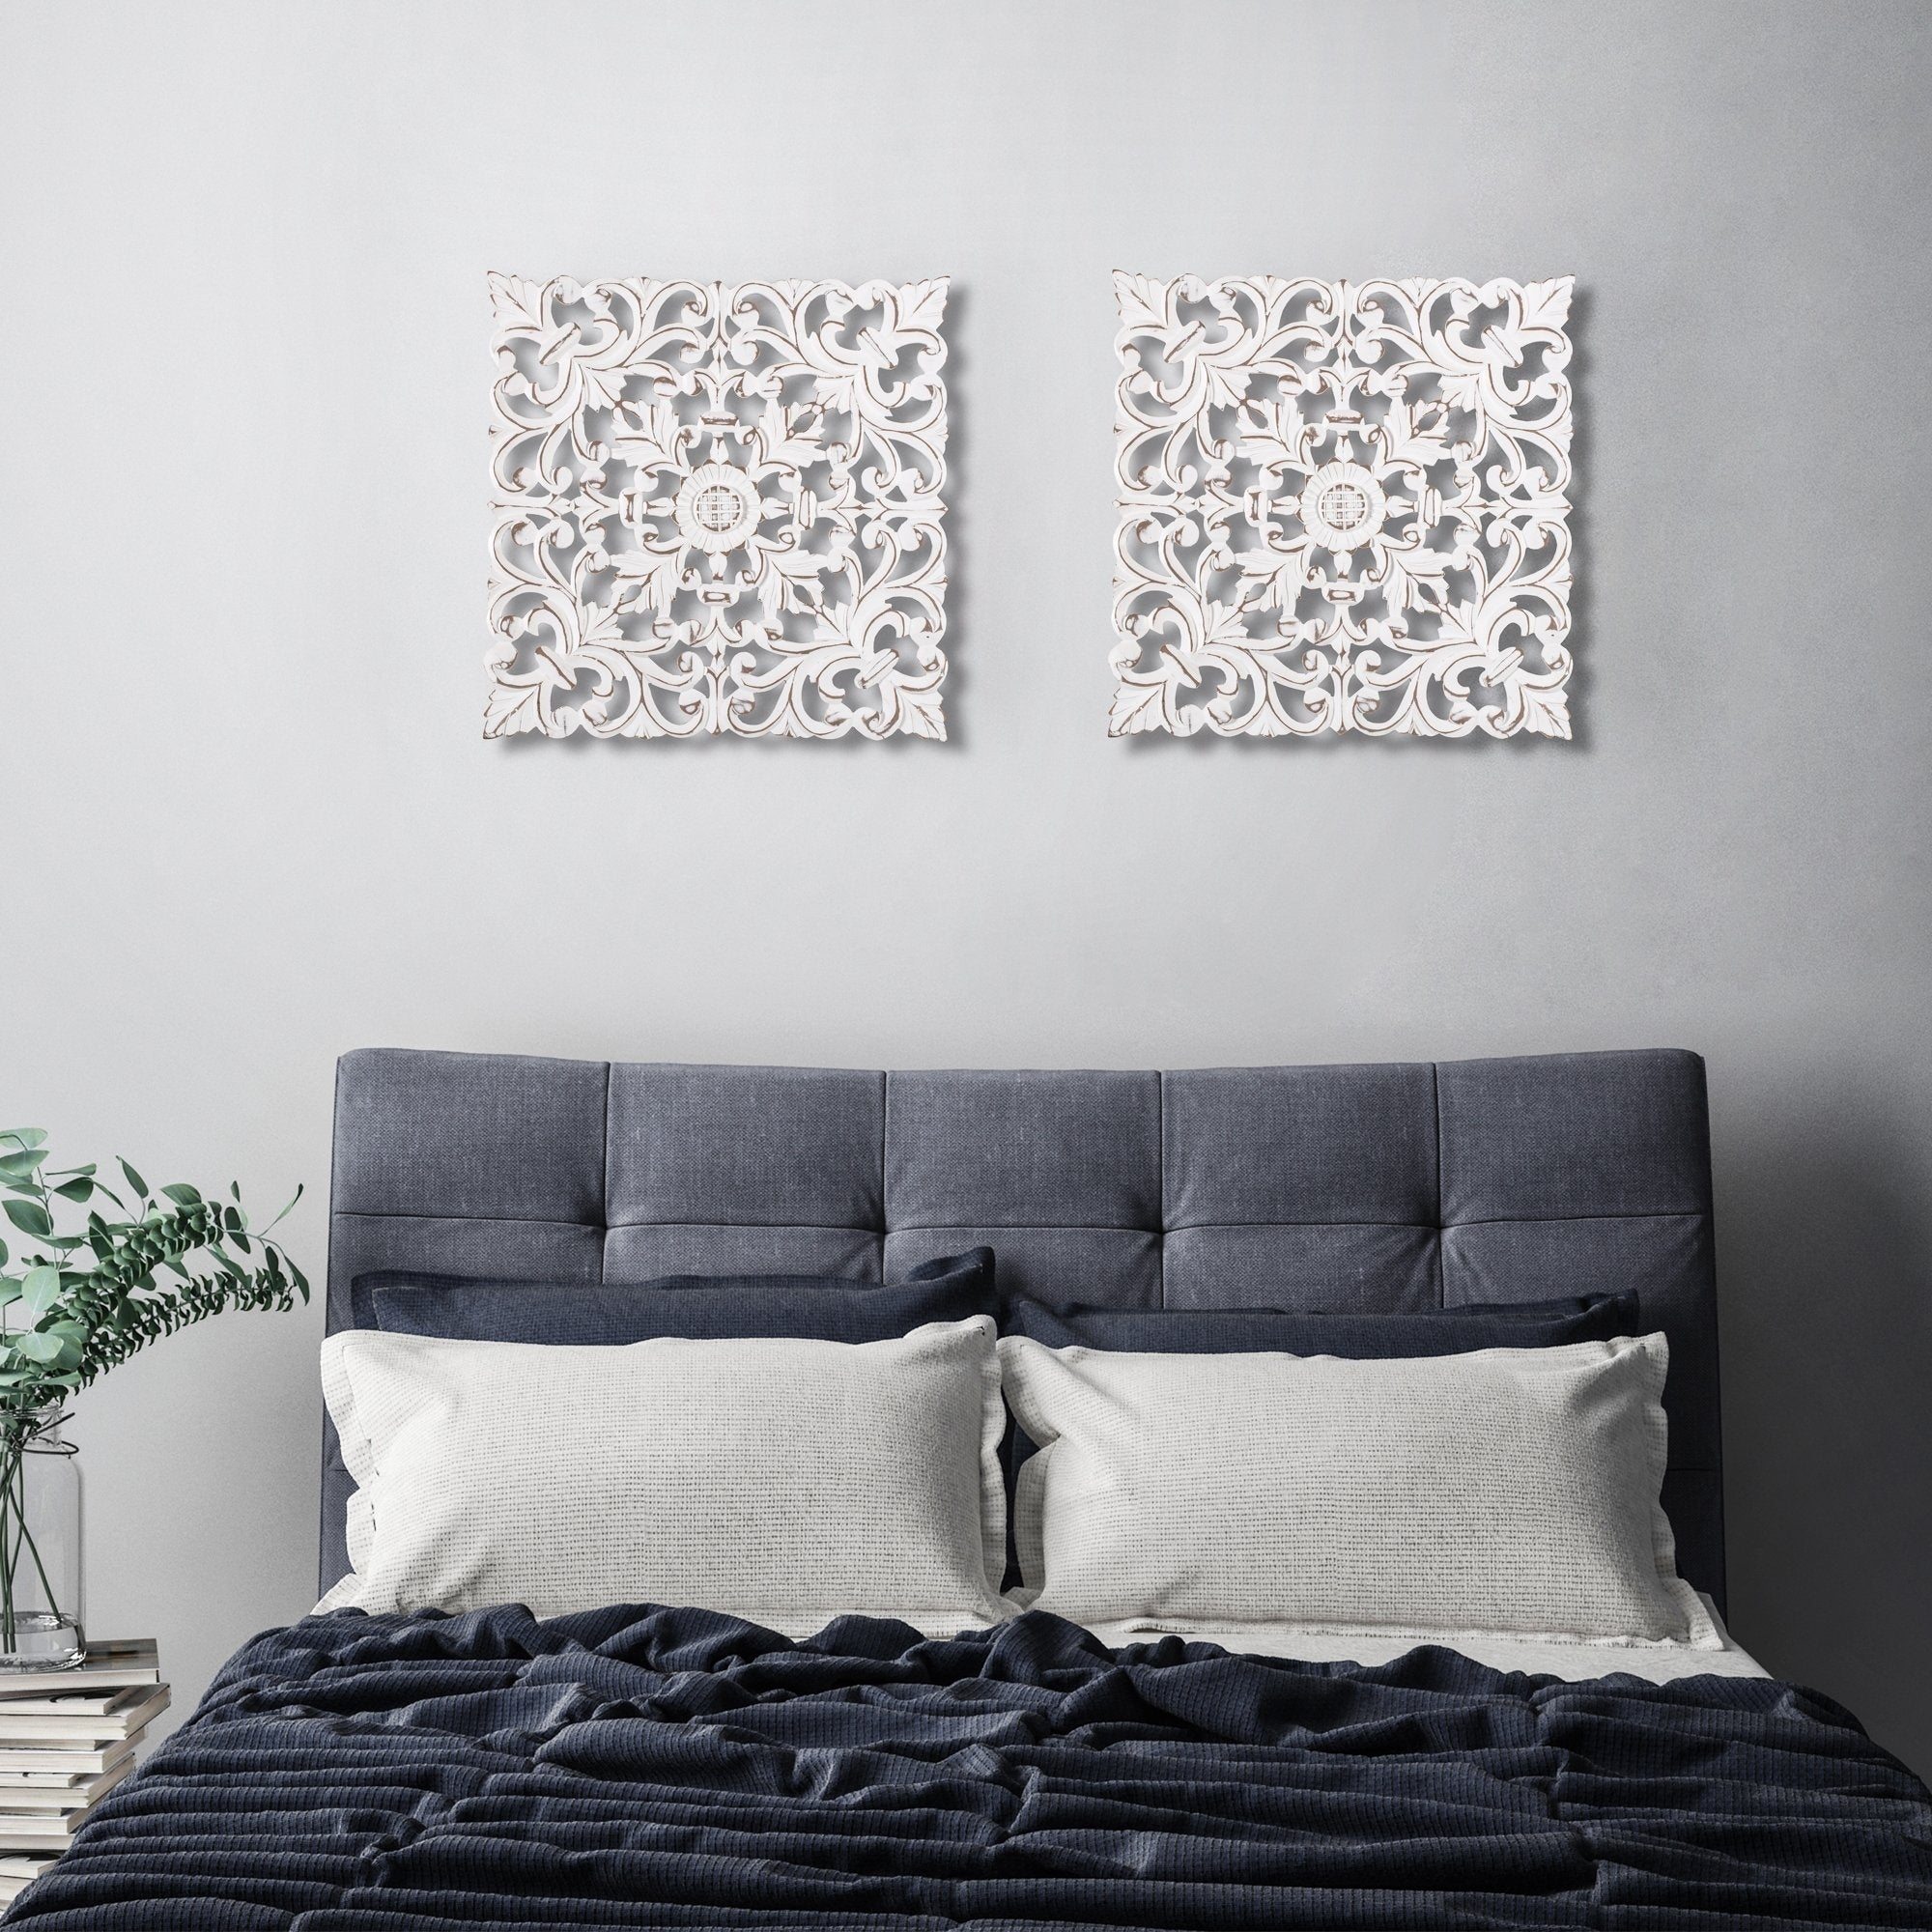 Shop For Madeleine Home All Season Wall Decor Medallion Bianci Pack Of 2 White Get Free Delivery On Everything At Overstock Your Online Art Gallery 5 In Rewards With Club O 26449851